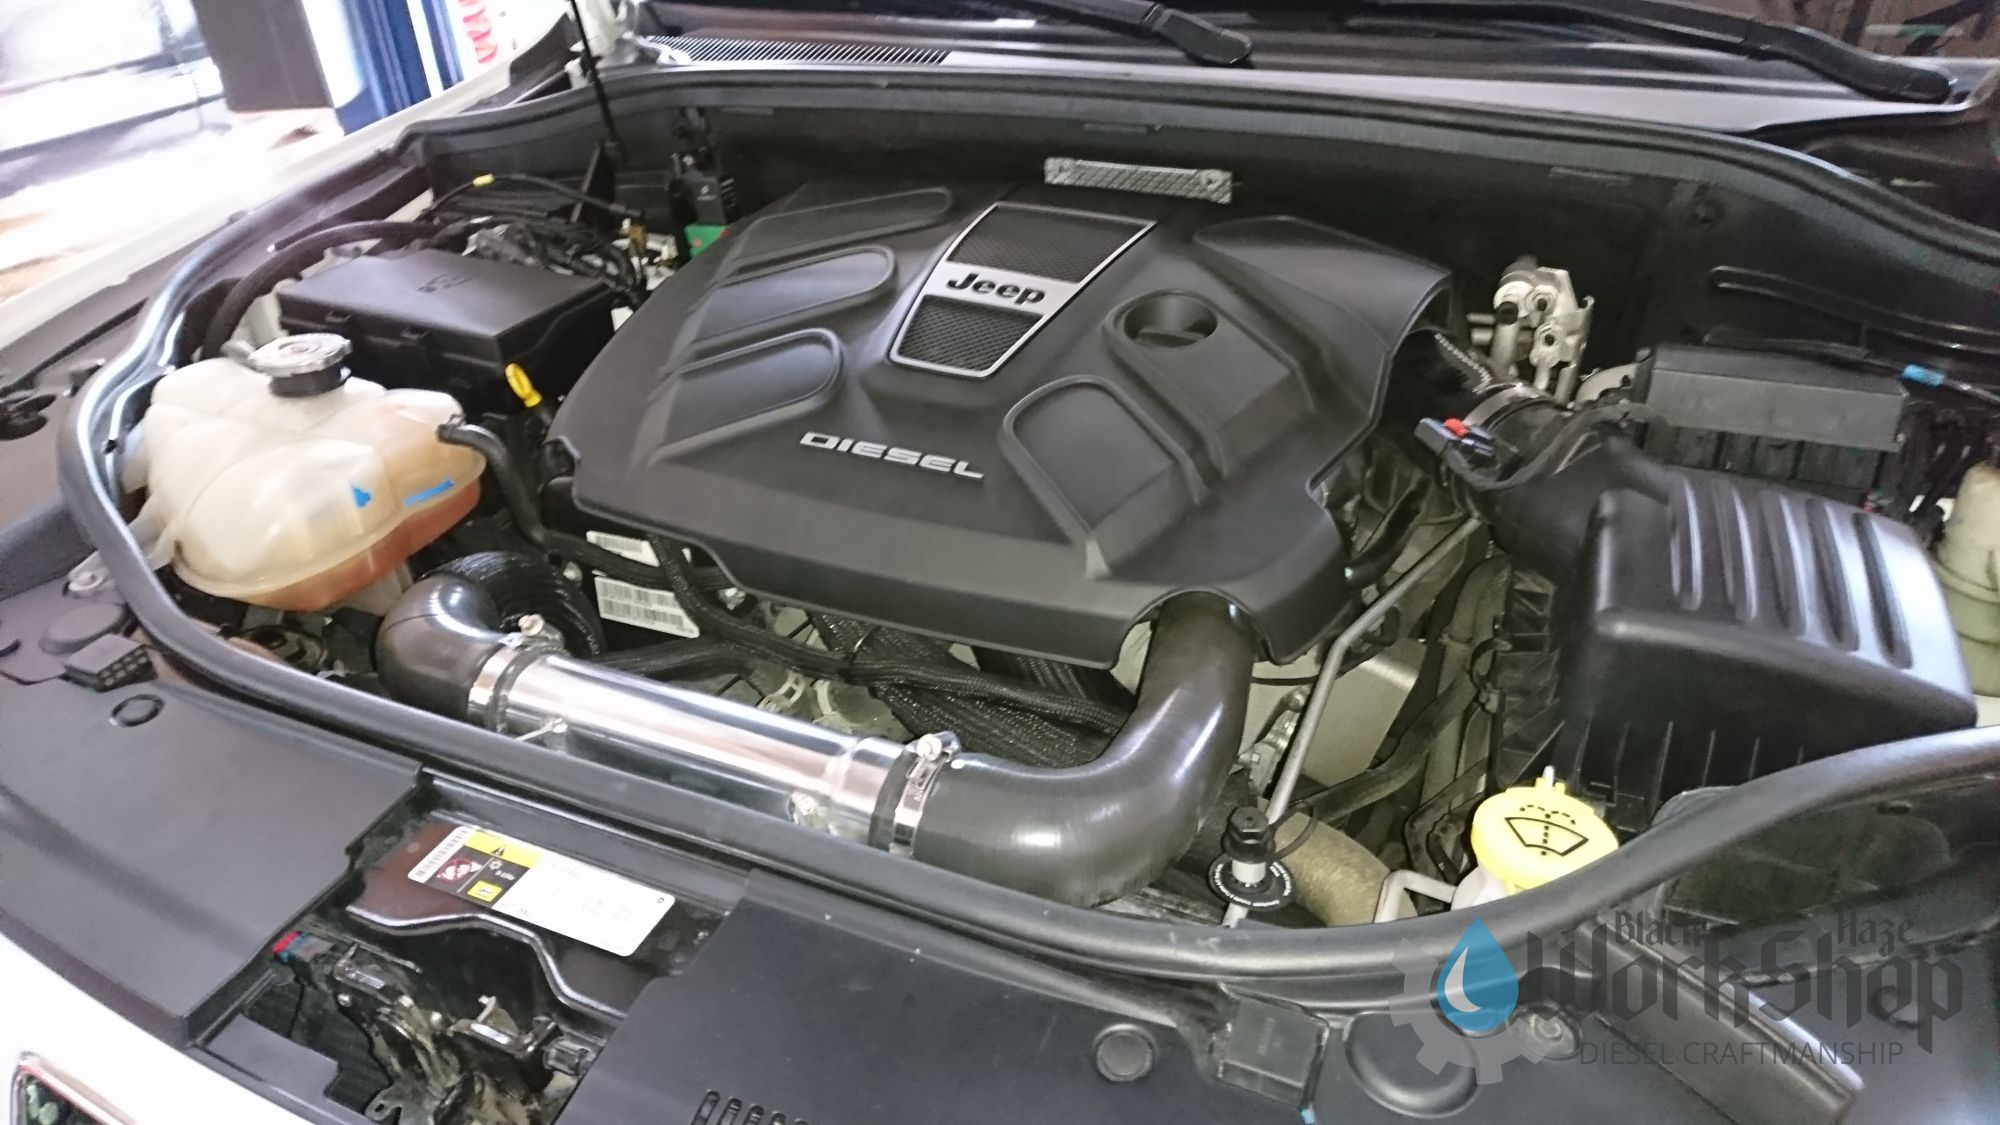 Jeep Cherokee WK2 3 0 Ecodiesel Performance boost pipe Silencer delete